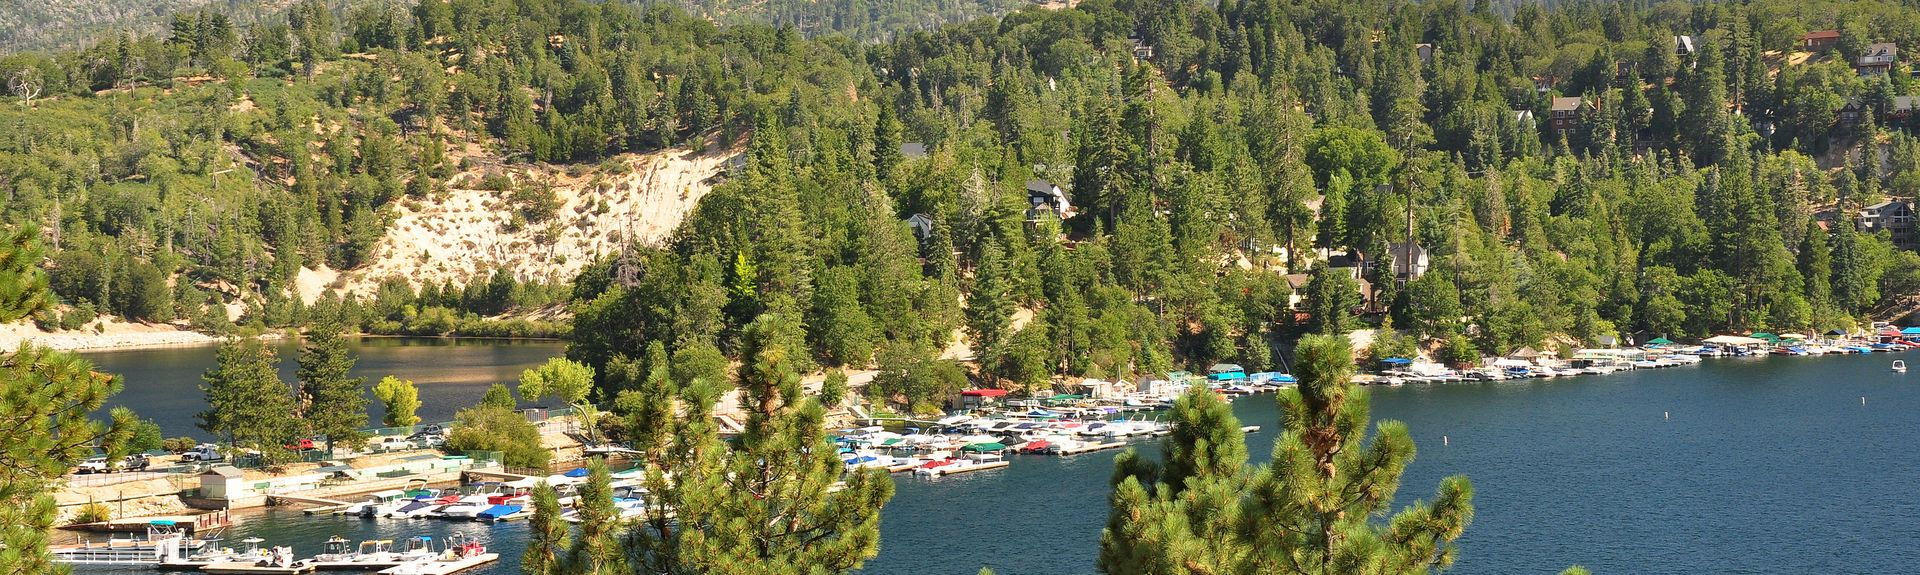 Lake Arrowhead, CA, USA